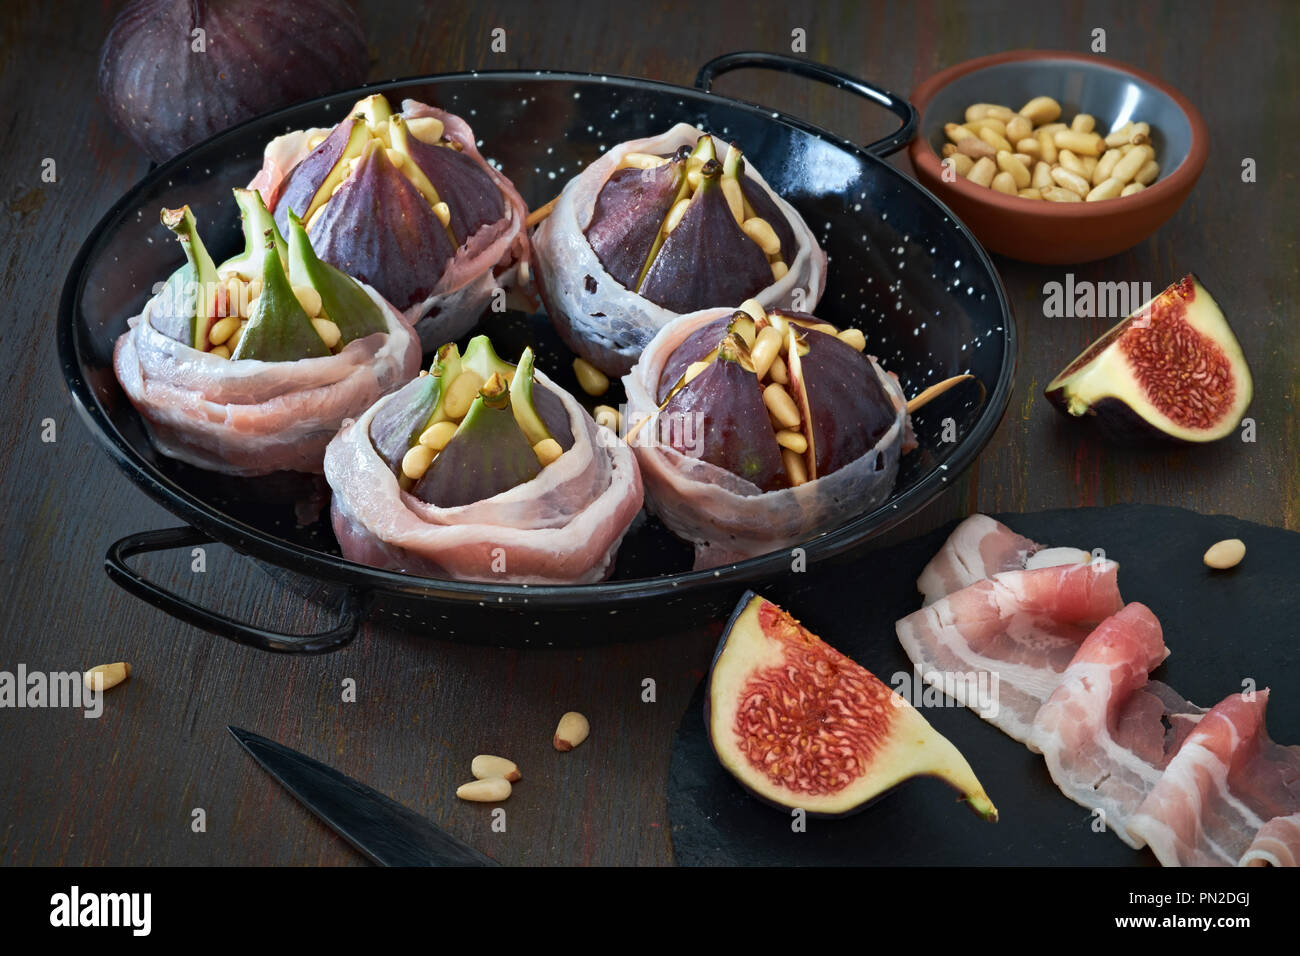 Preparation and ingredients for baking figs stuffes with pine nuts and wrapped in bacon slices - Stock Image